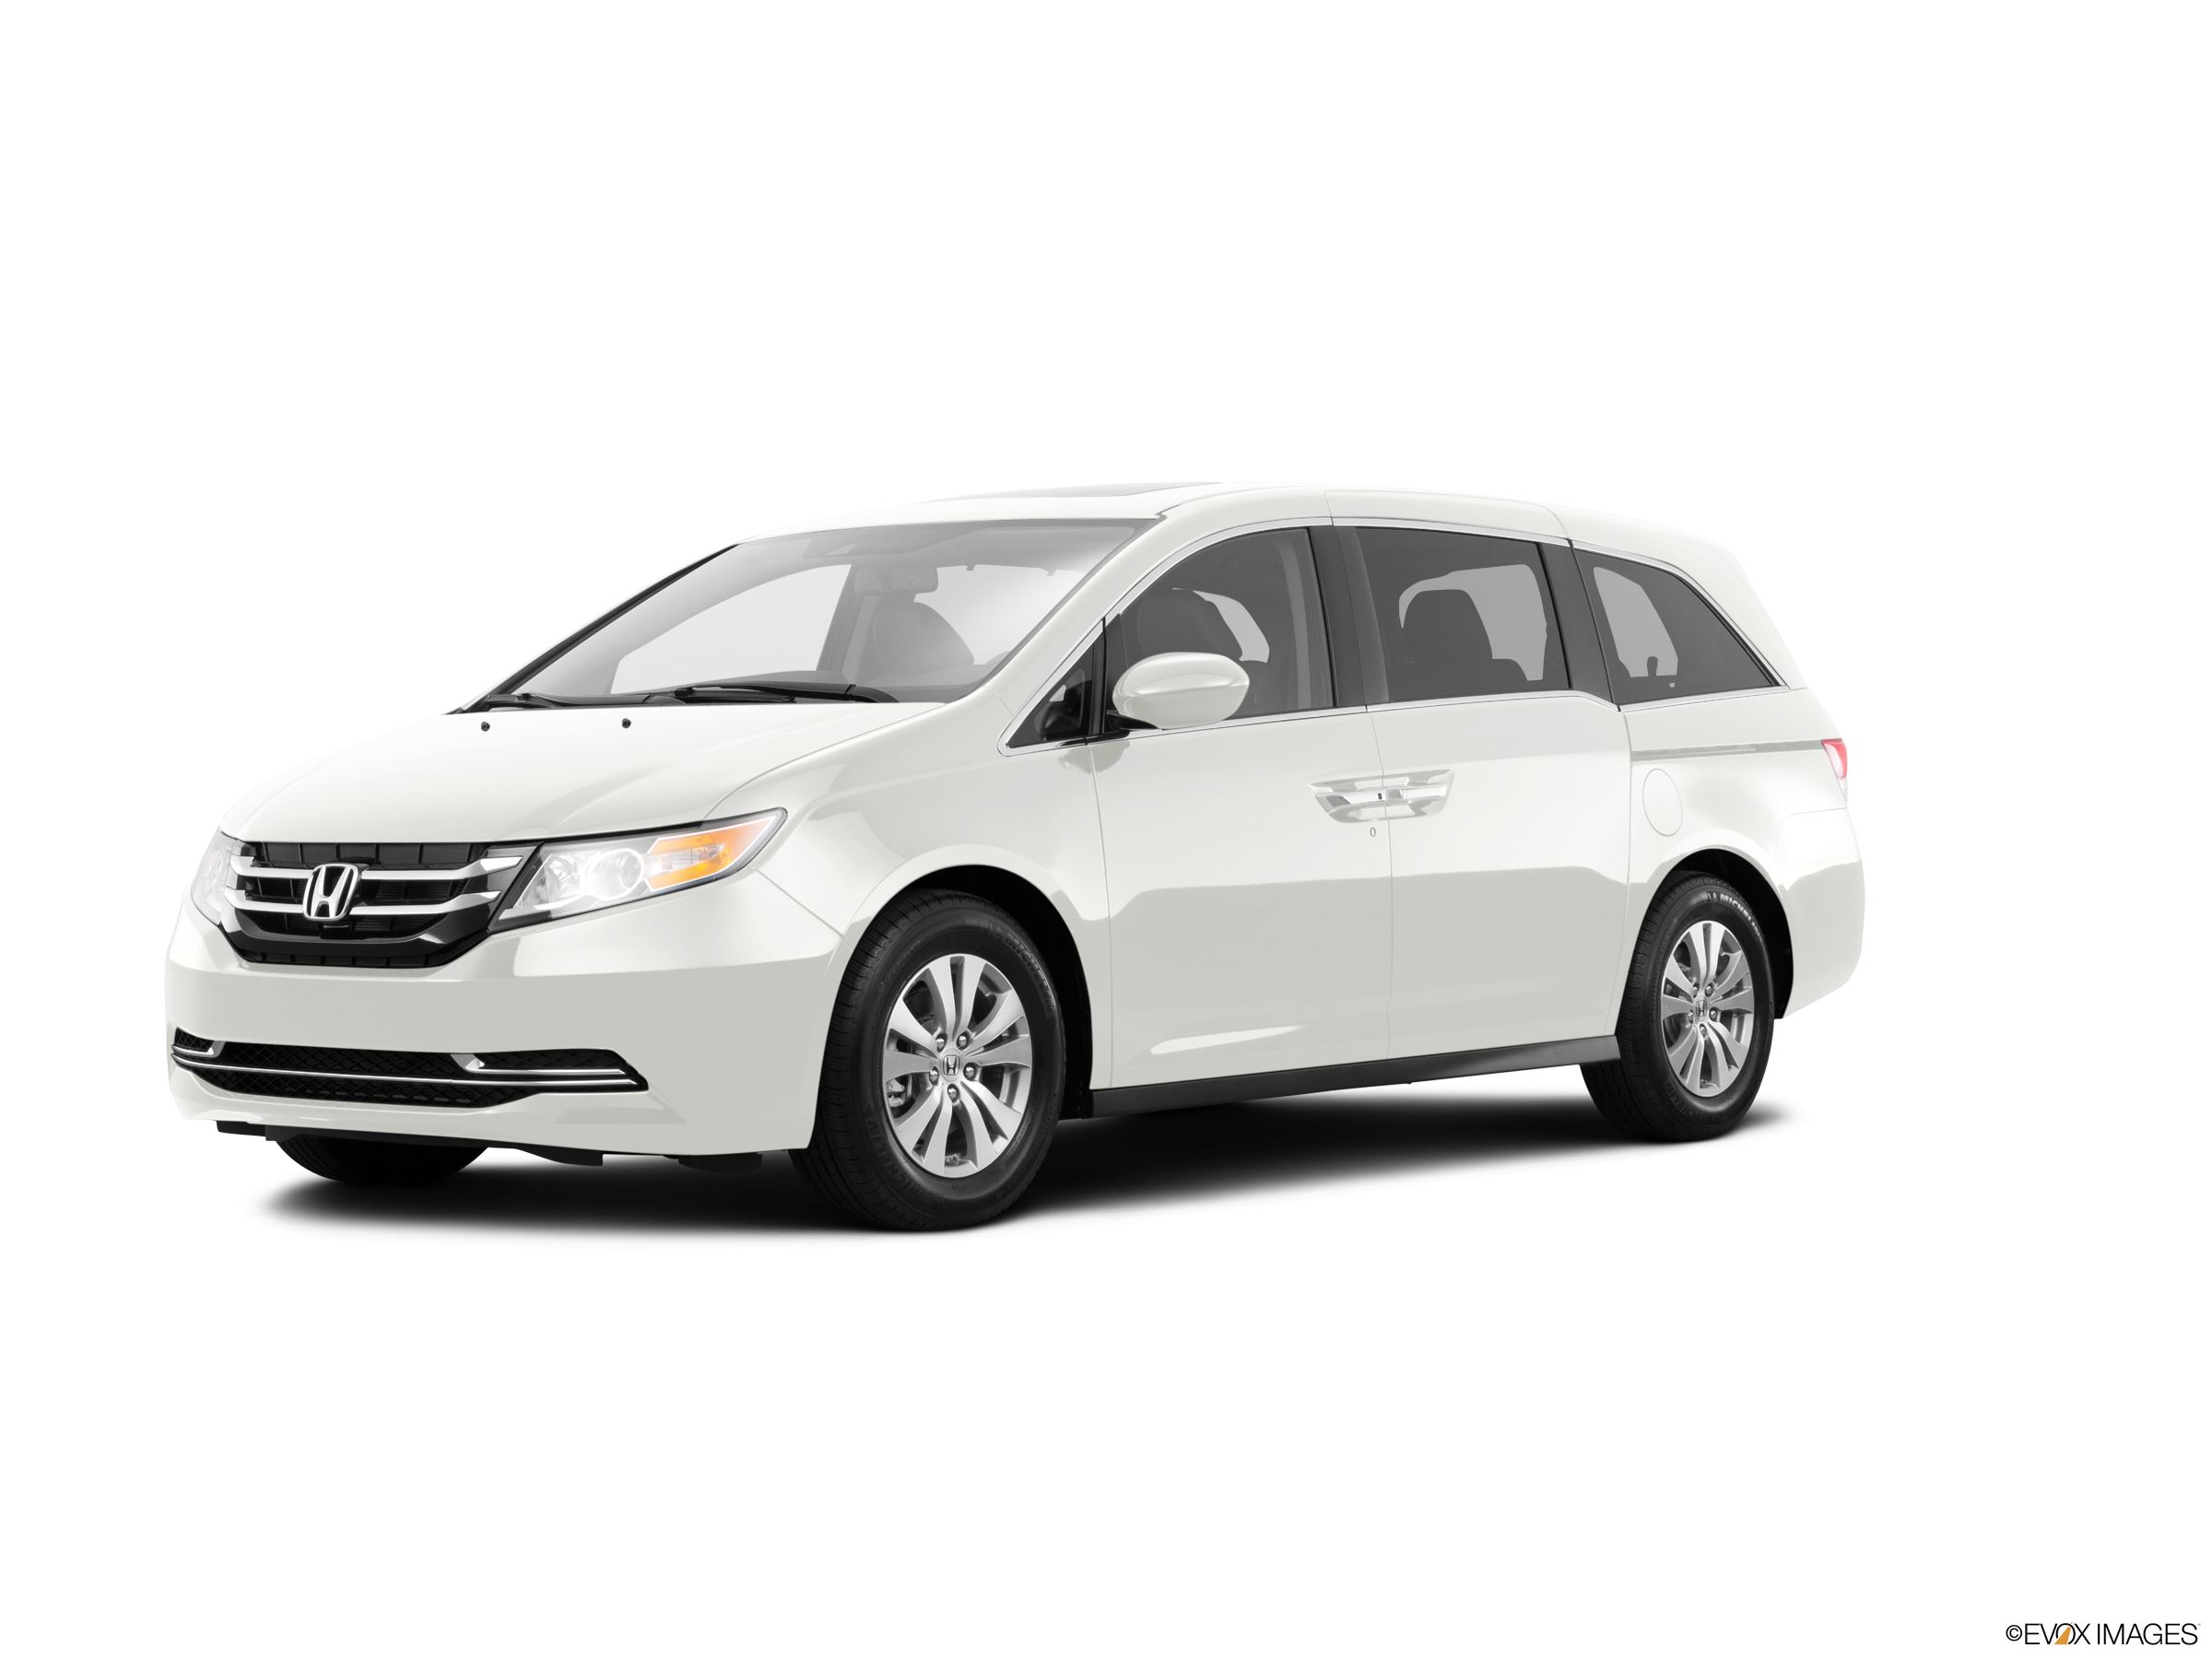 Top Expert Rated Van/Minivans of 2017 - 2017 Honda Odyssey